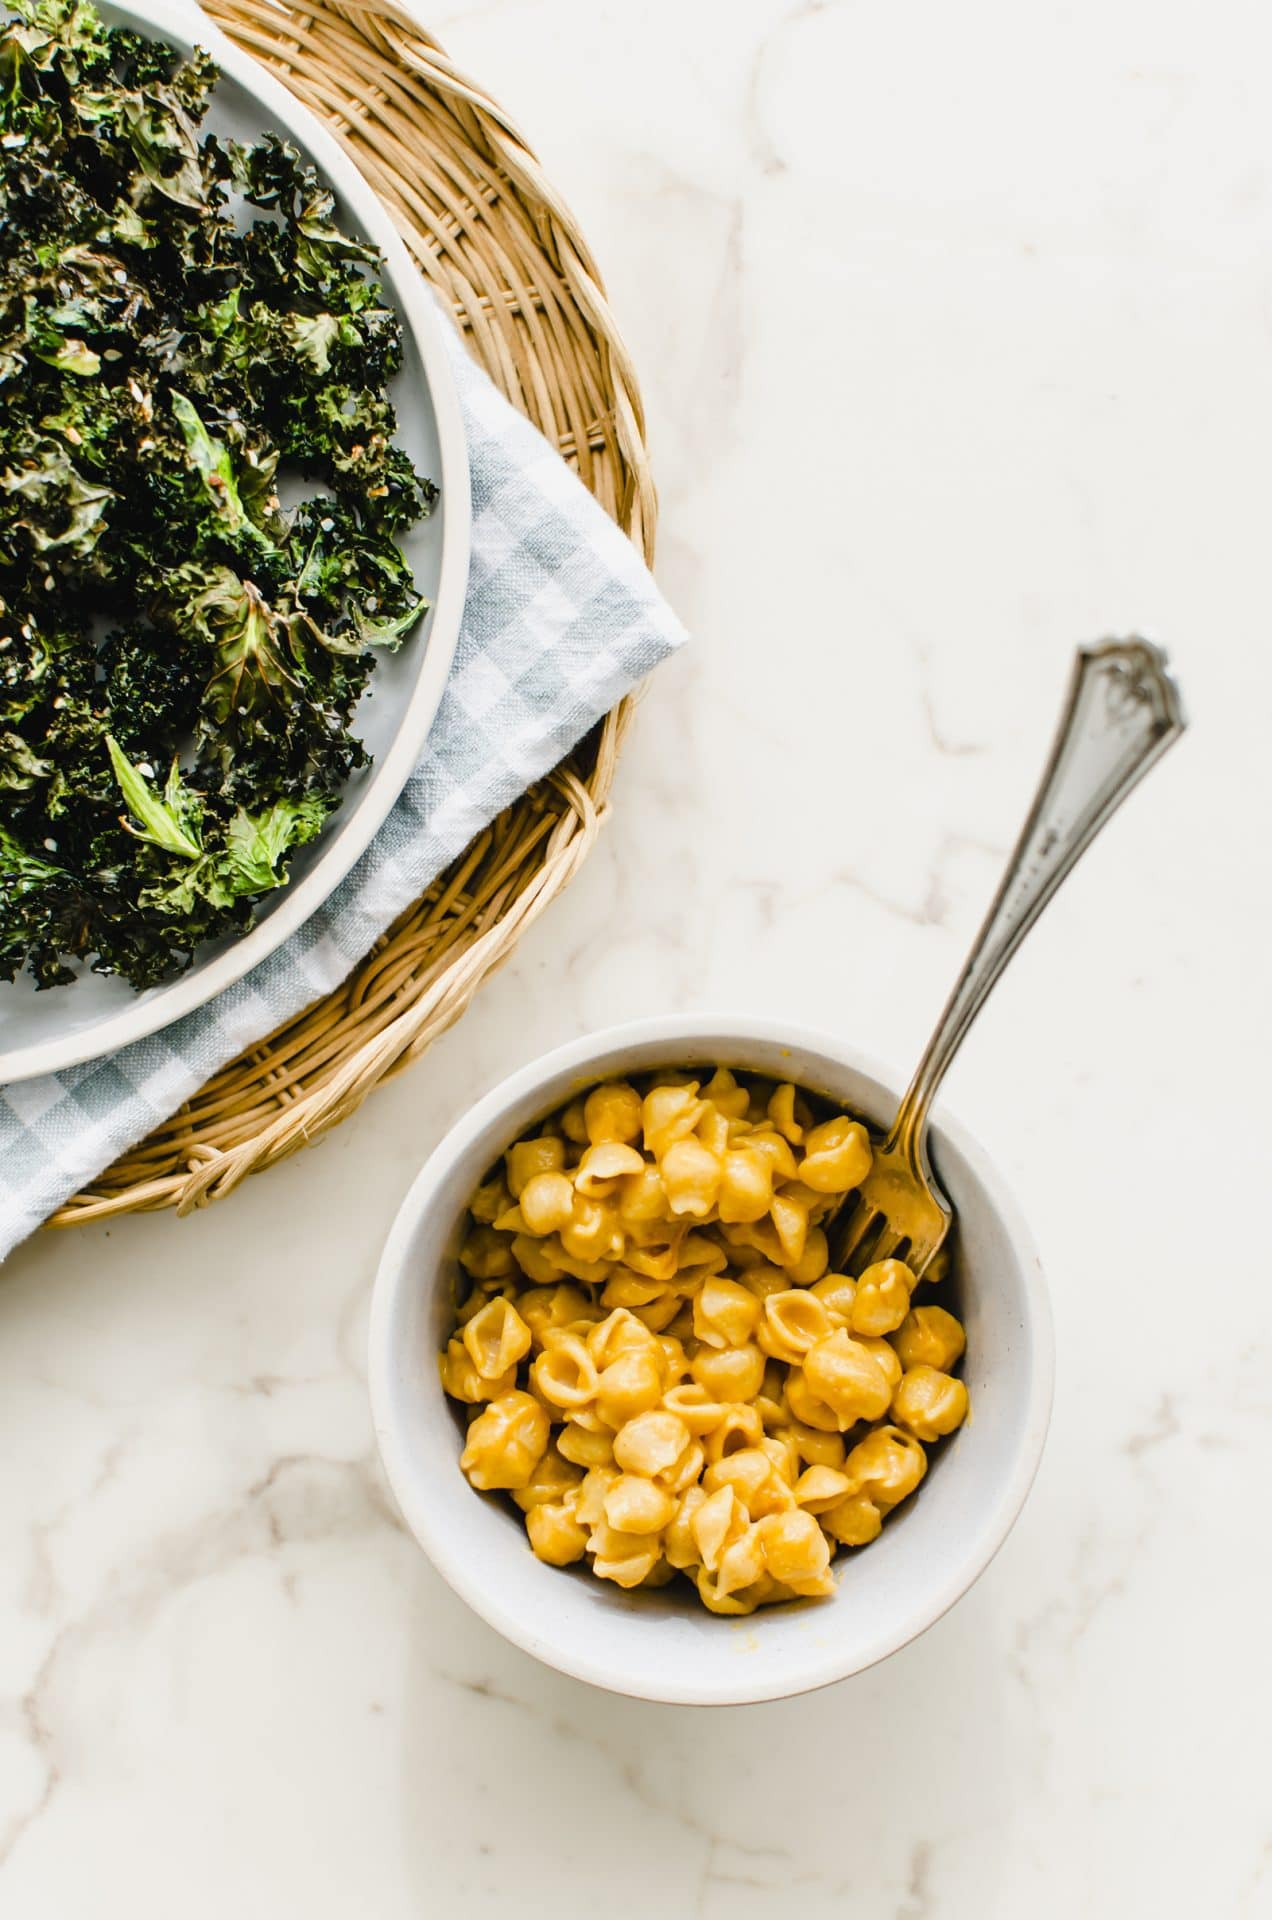 A bowl of mac and cheese with a plate of kale chips on the side.